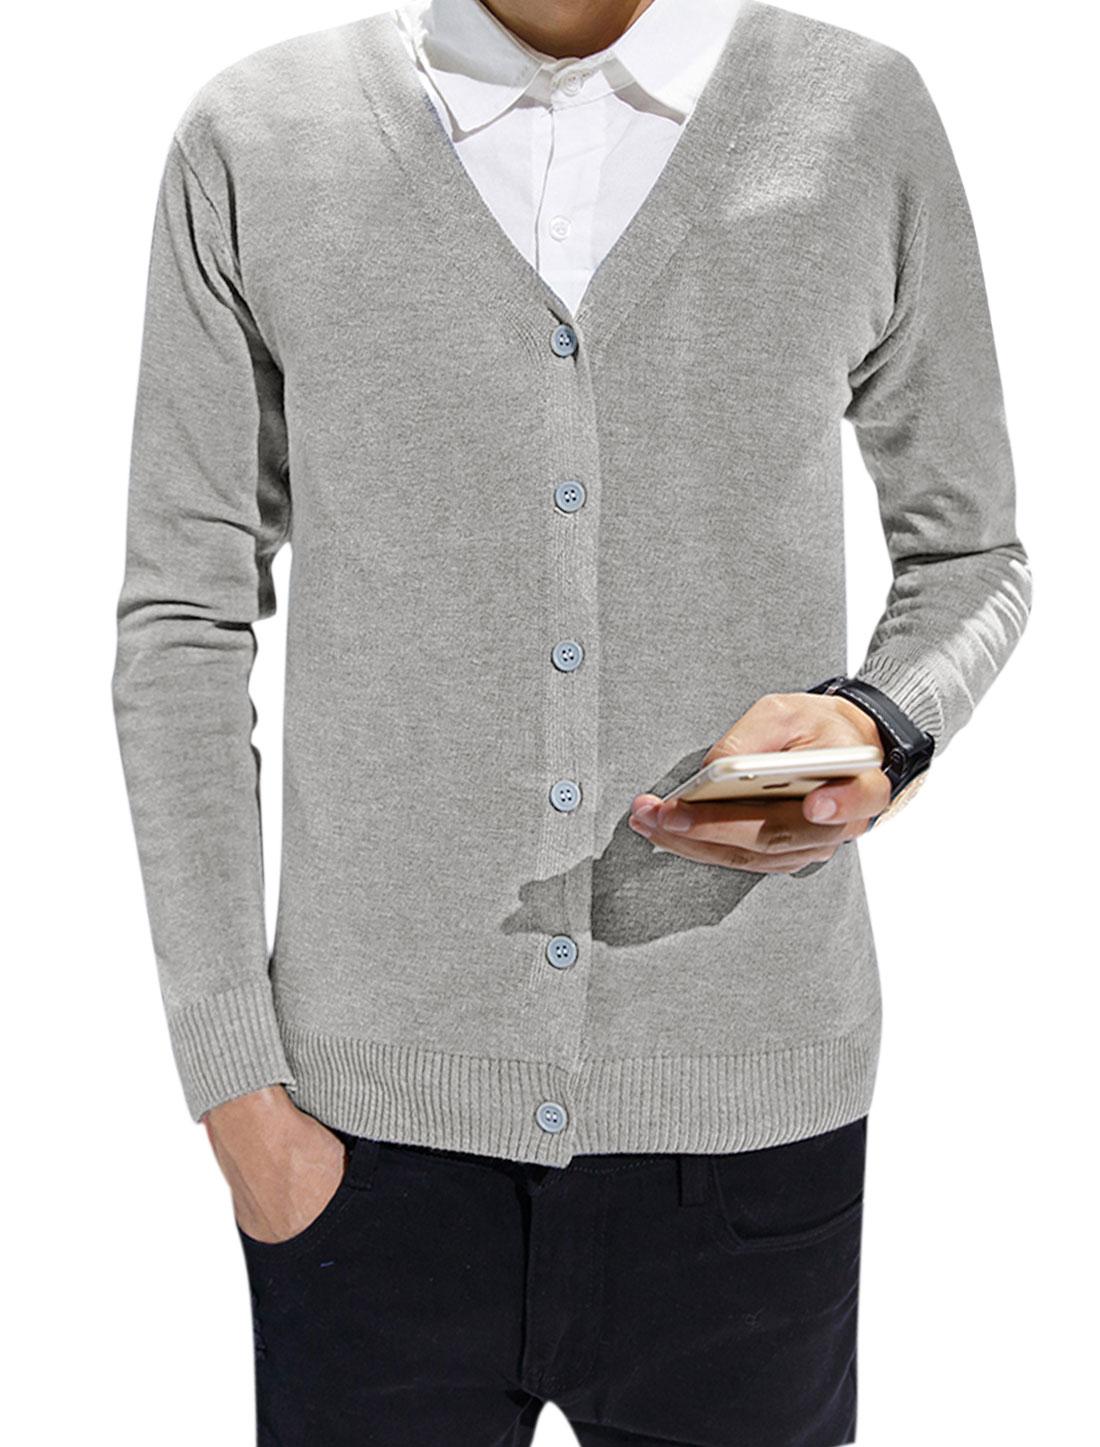 Men V Neck Long Sleeves Full Button Slim Fit Knit Cardigan Light Gray S